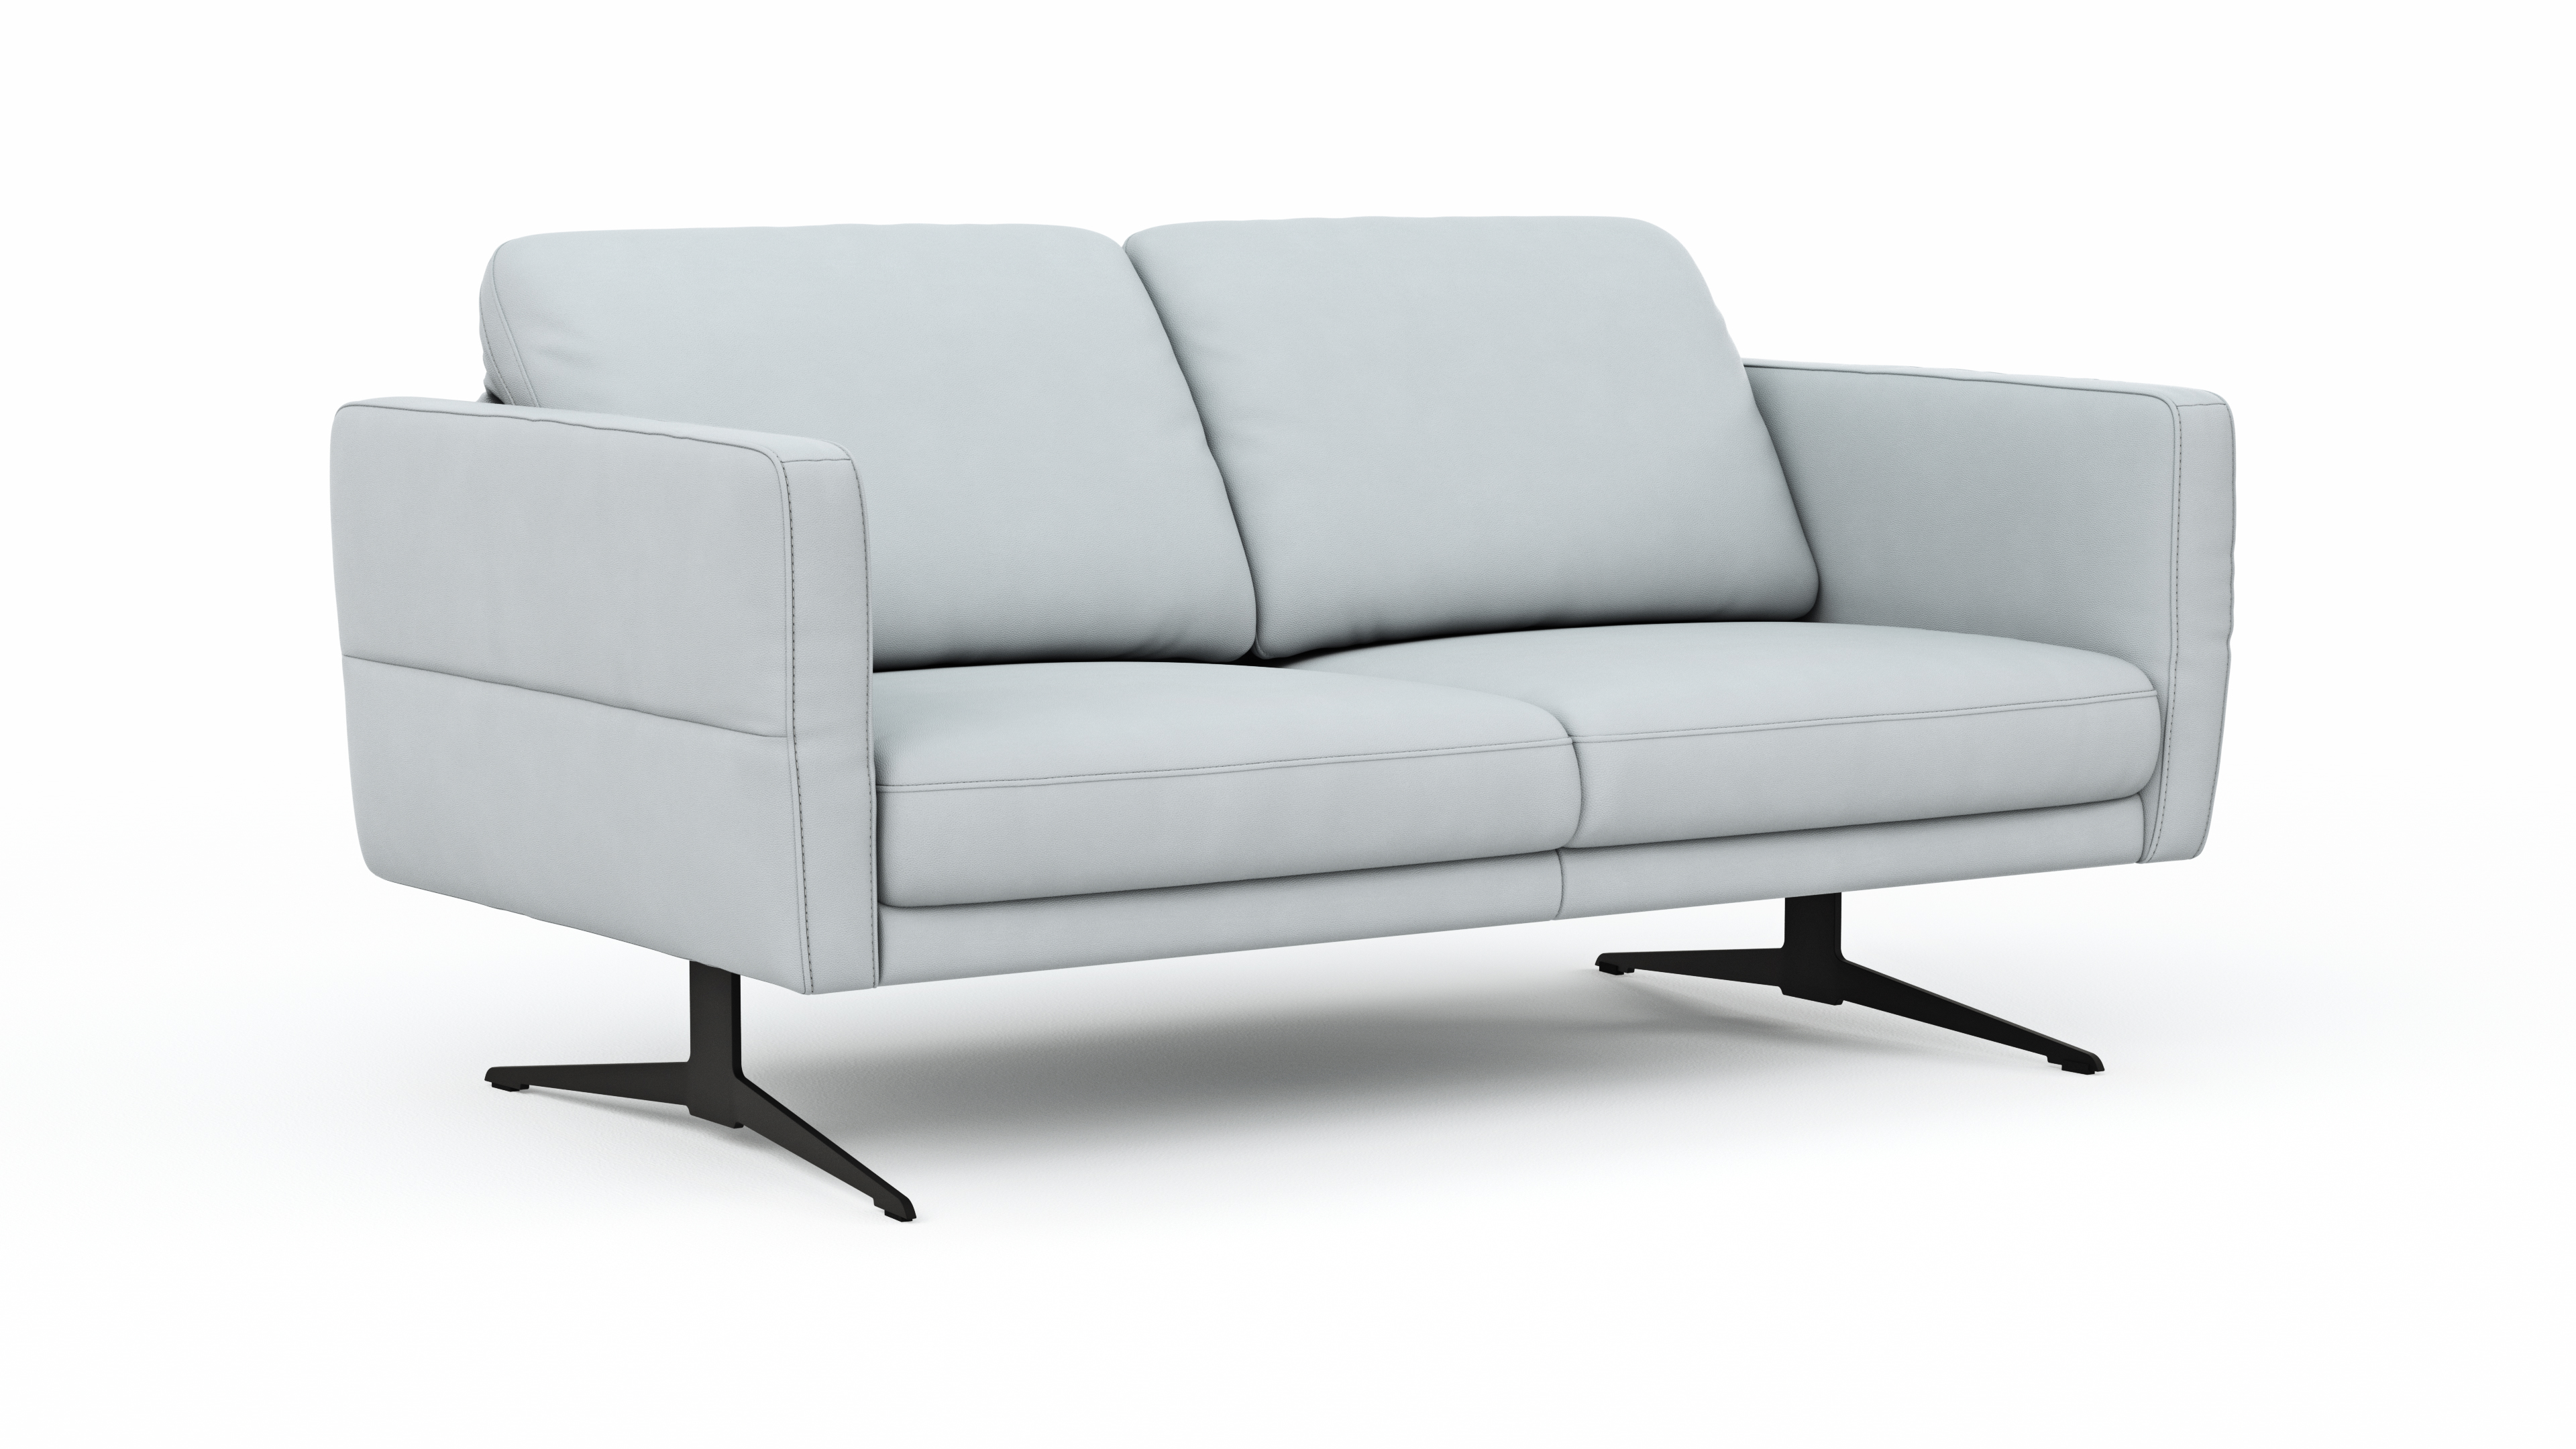 Global Select Sofa Estrela freisteller 2 104205 | Homepoet